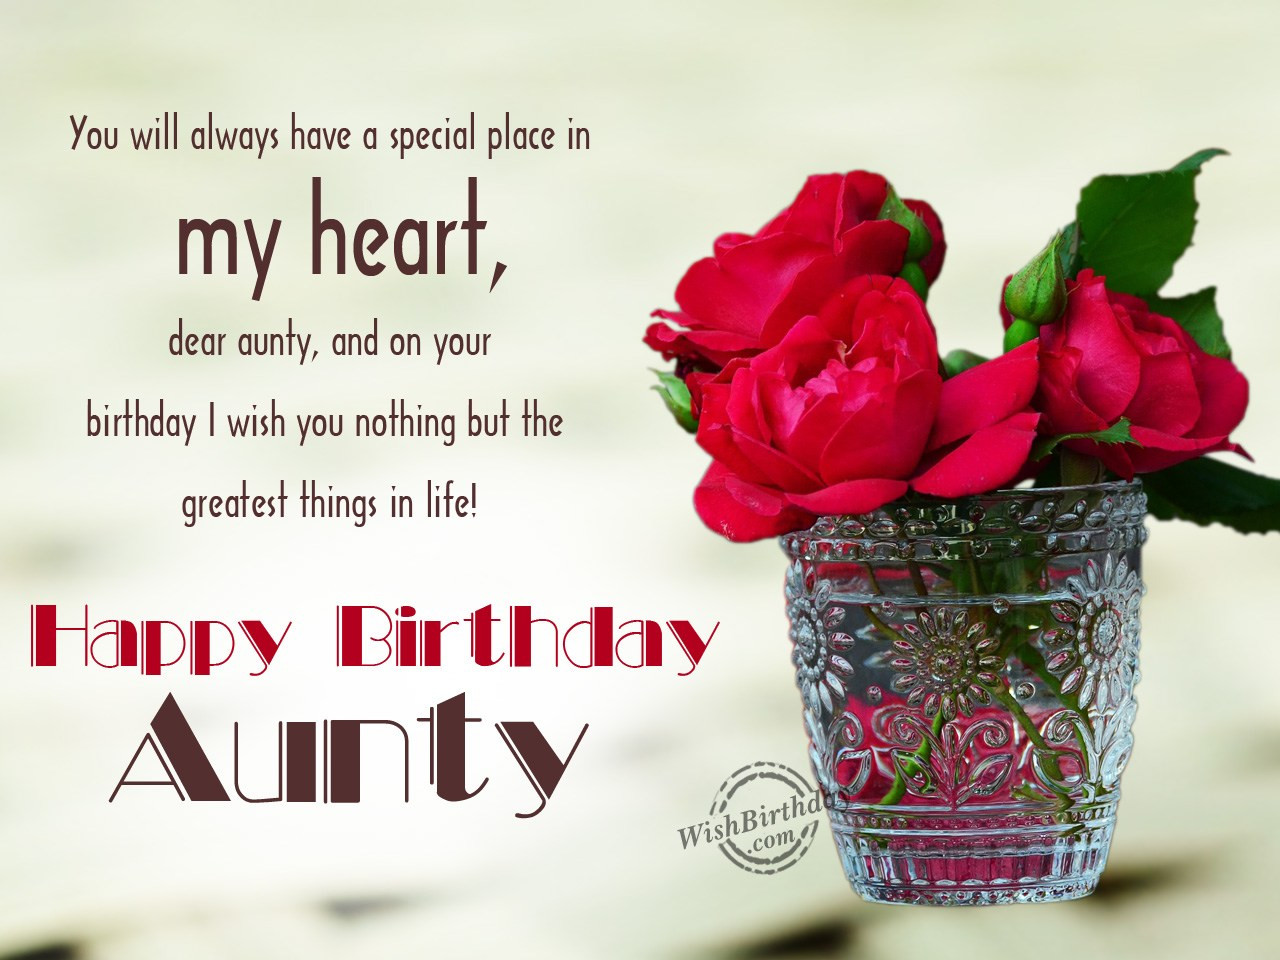 Best ideas about Aunt Birthday Wish . Save or Pin Birthday Wishes For Aunt Birthday Now.